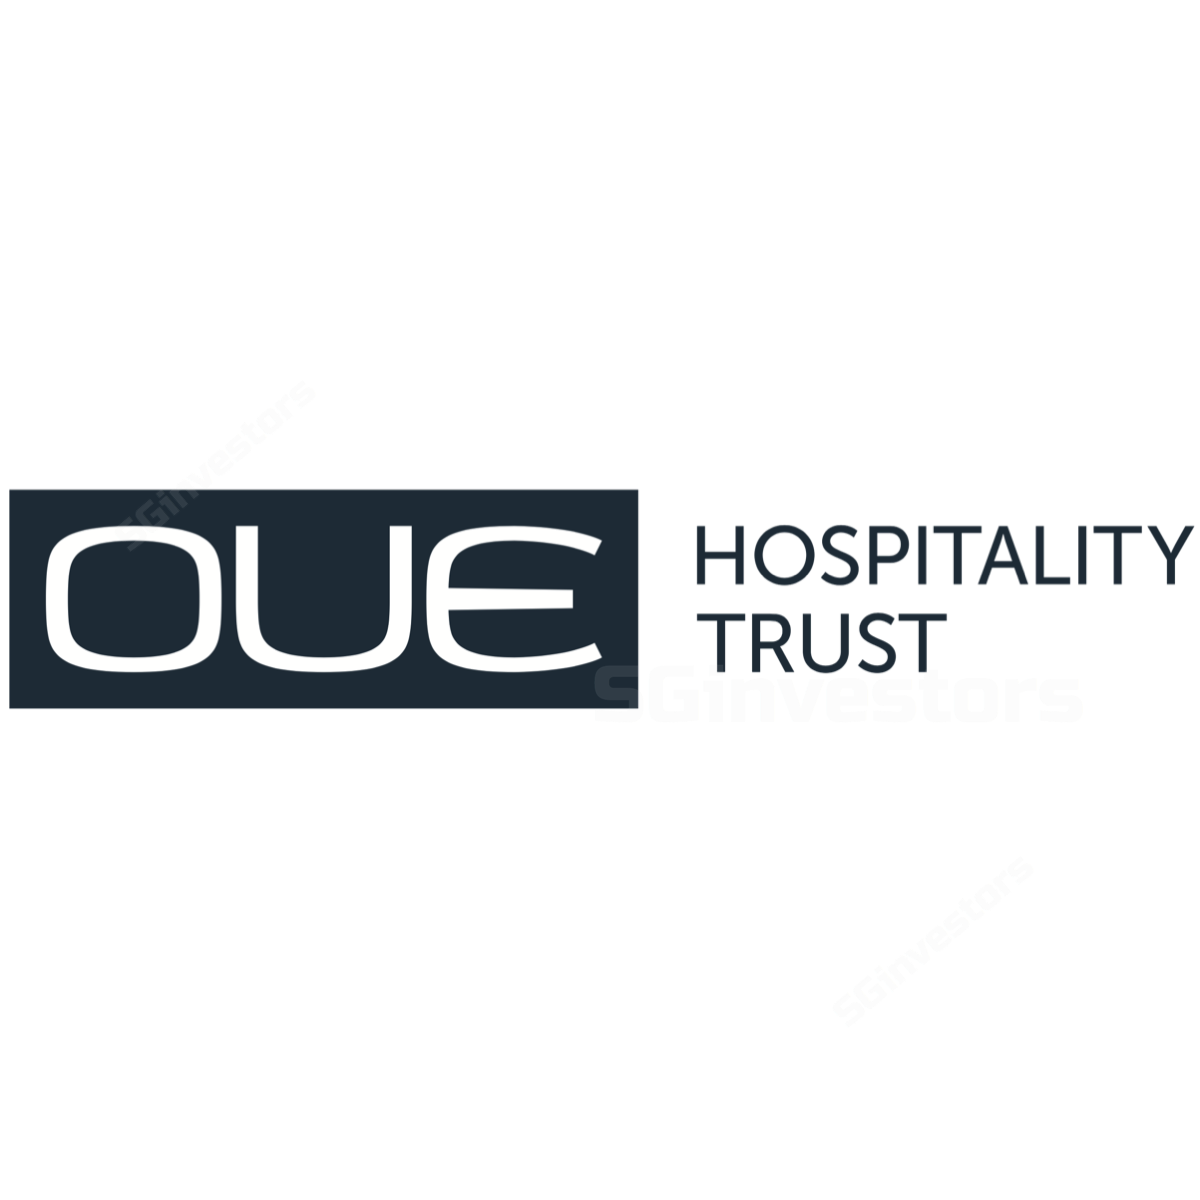 OUE Hospitality Trust - DBS Vickers 2017-05-05: Michael, Victoria and Changi arriving